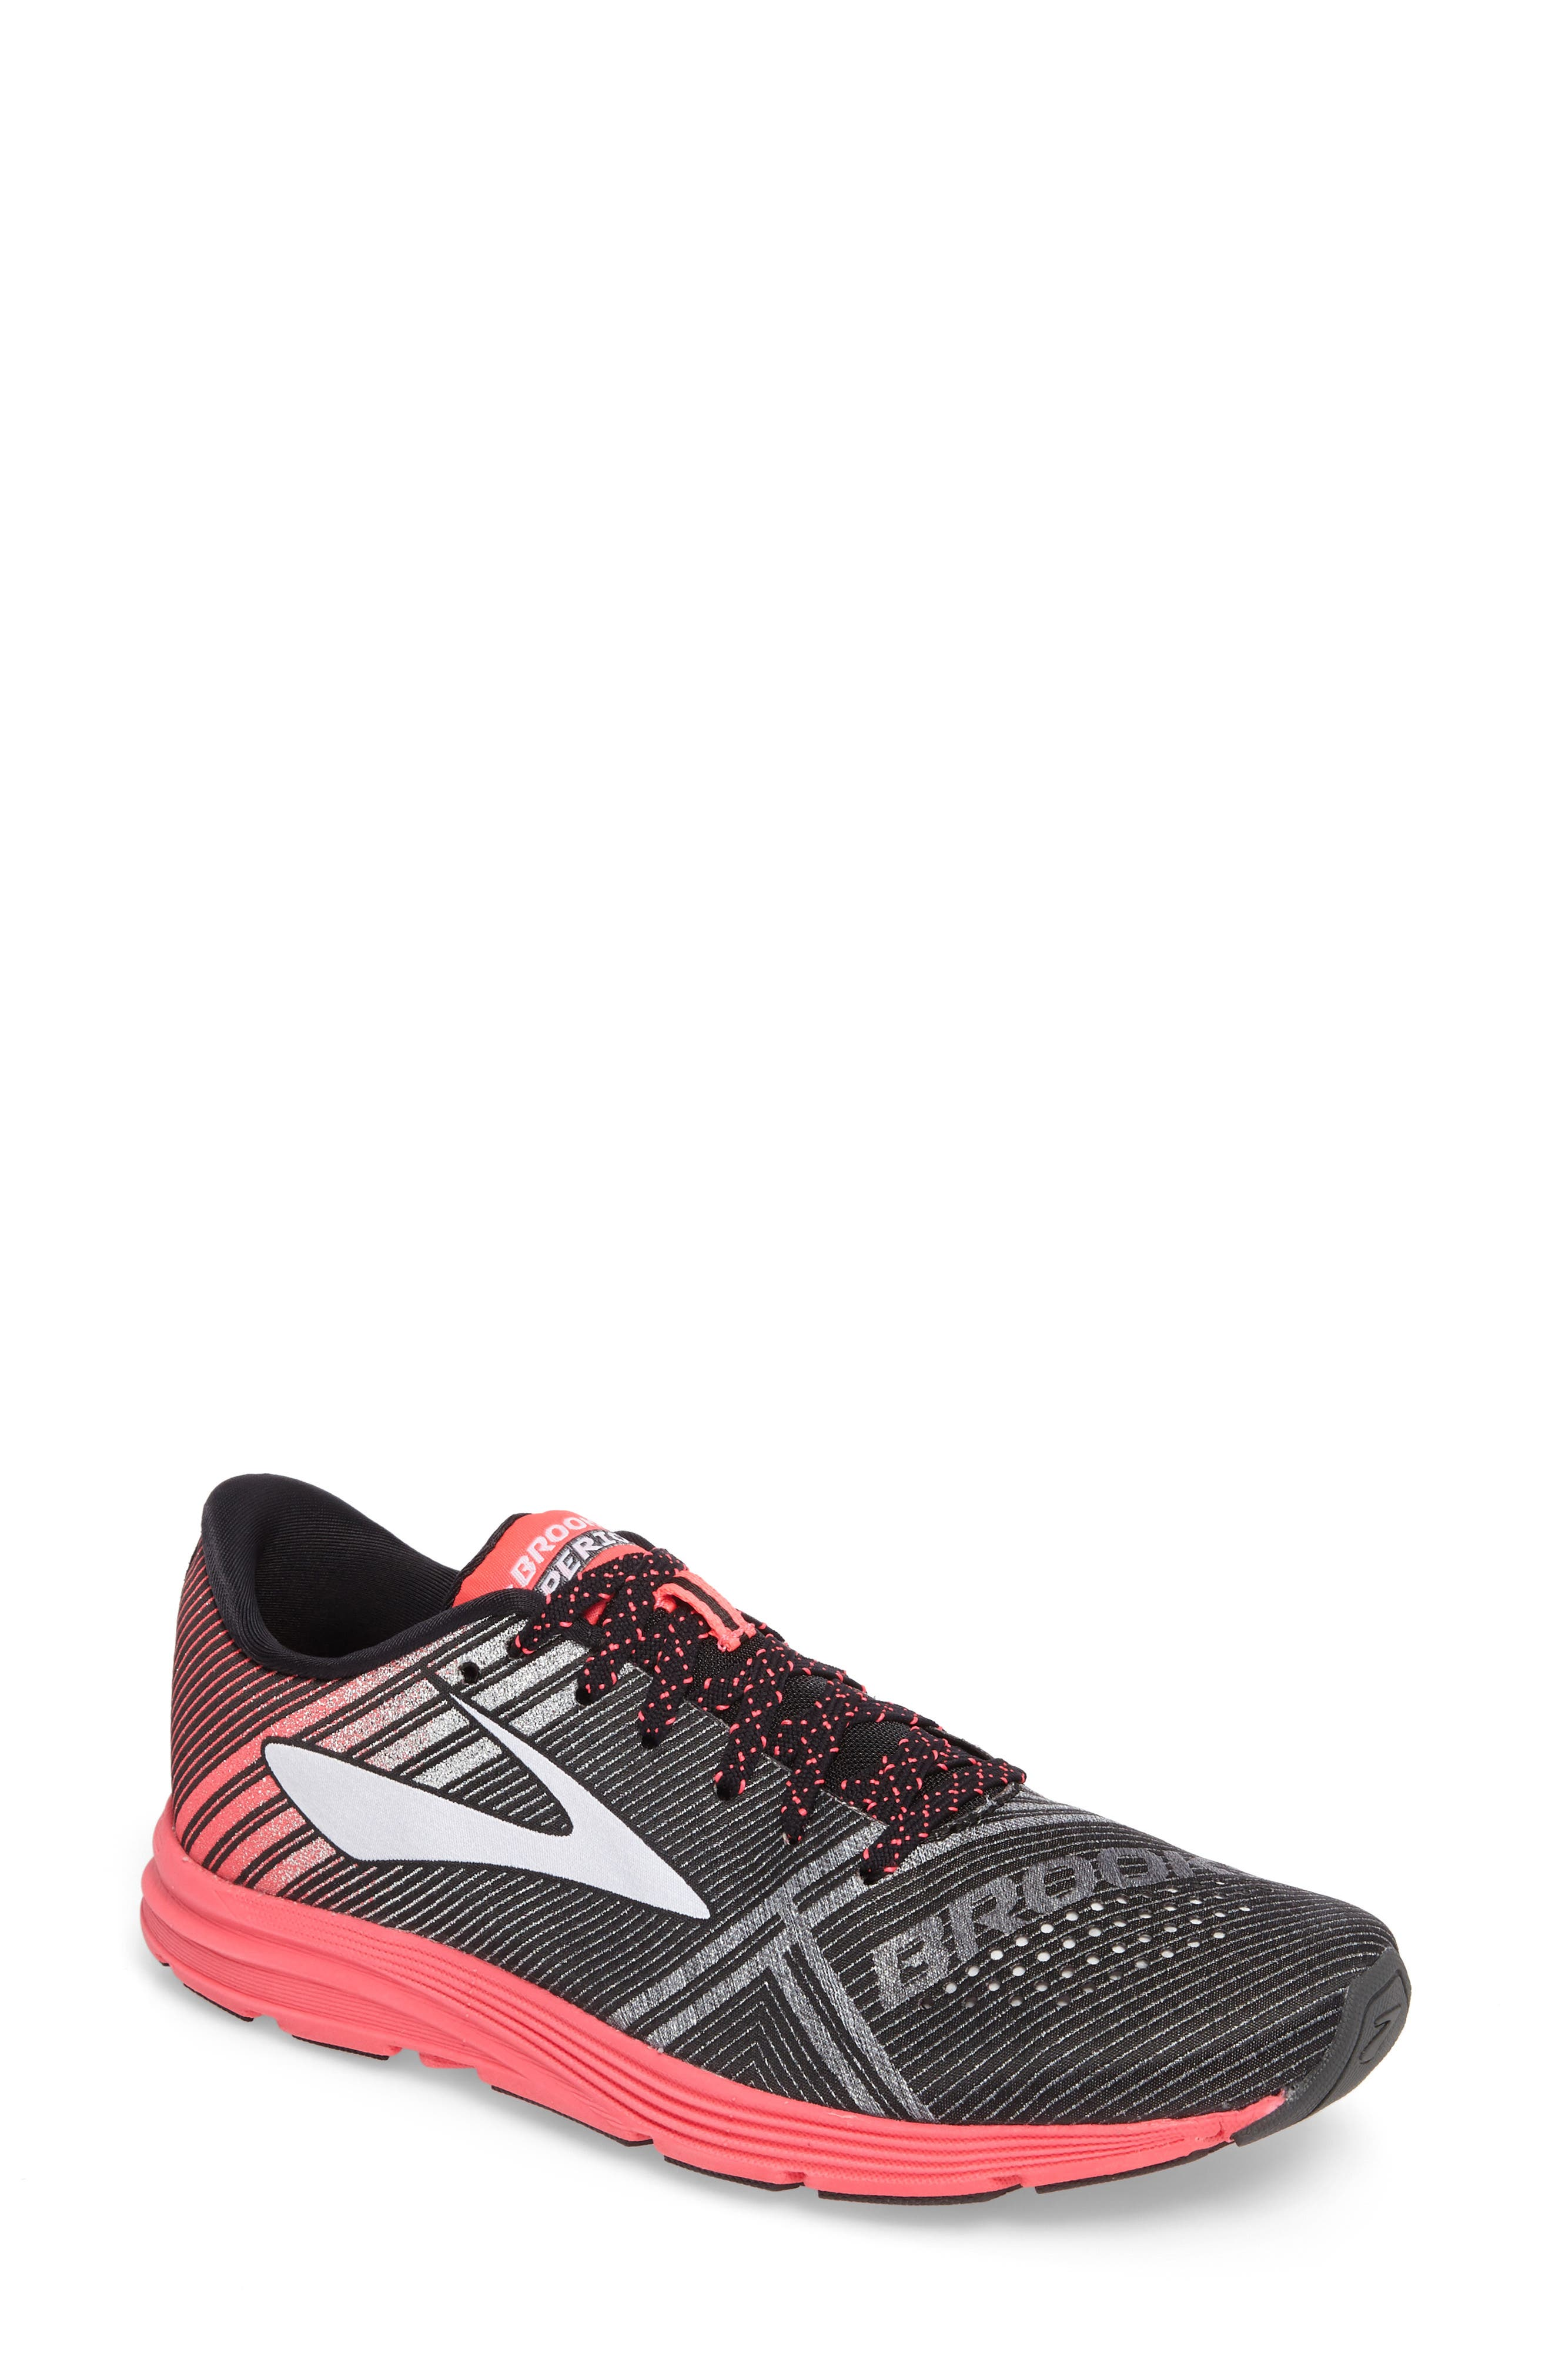 'Hyperion' Running Shoe,                         Main,                         color, Black/ Pink/ Diamond